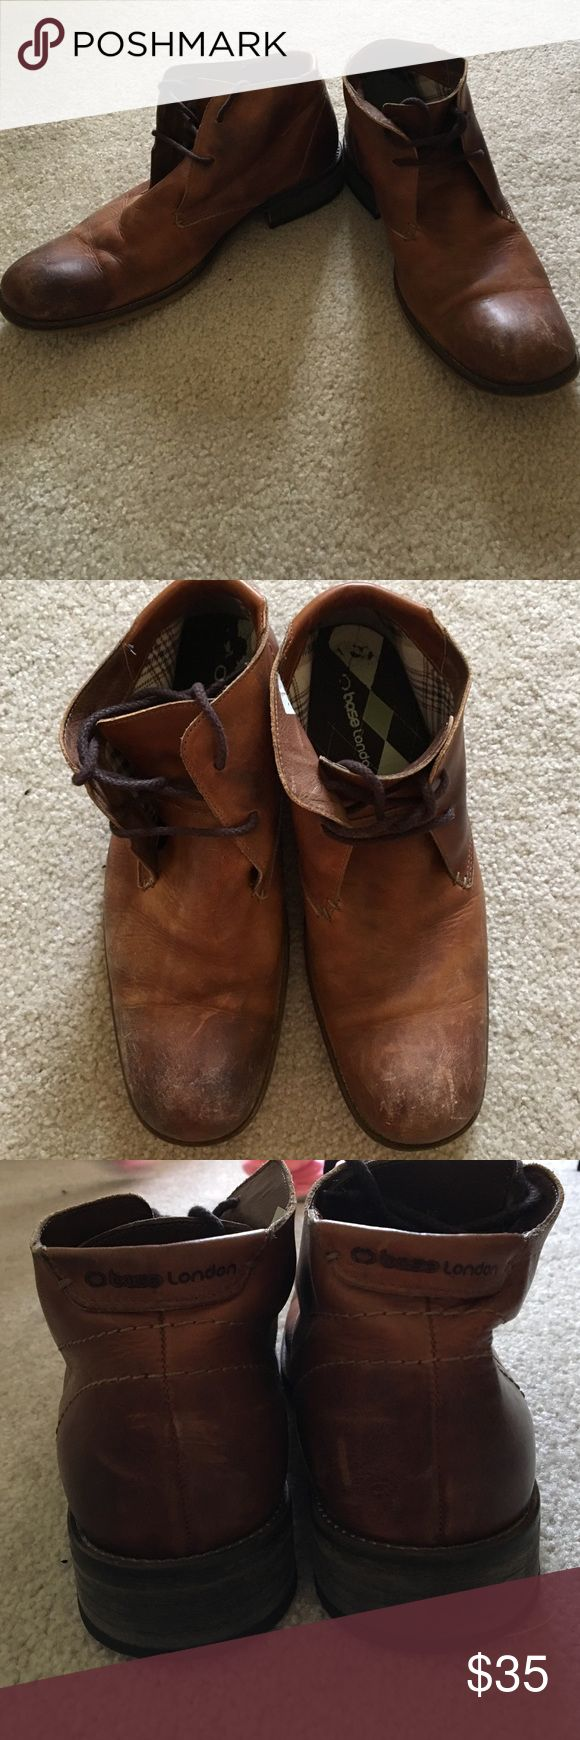 Bass London brown boots Gently used base London brown boots UK SIZE 41 Bass london Shoes Boots